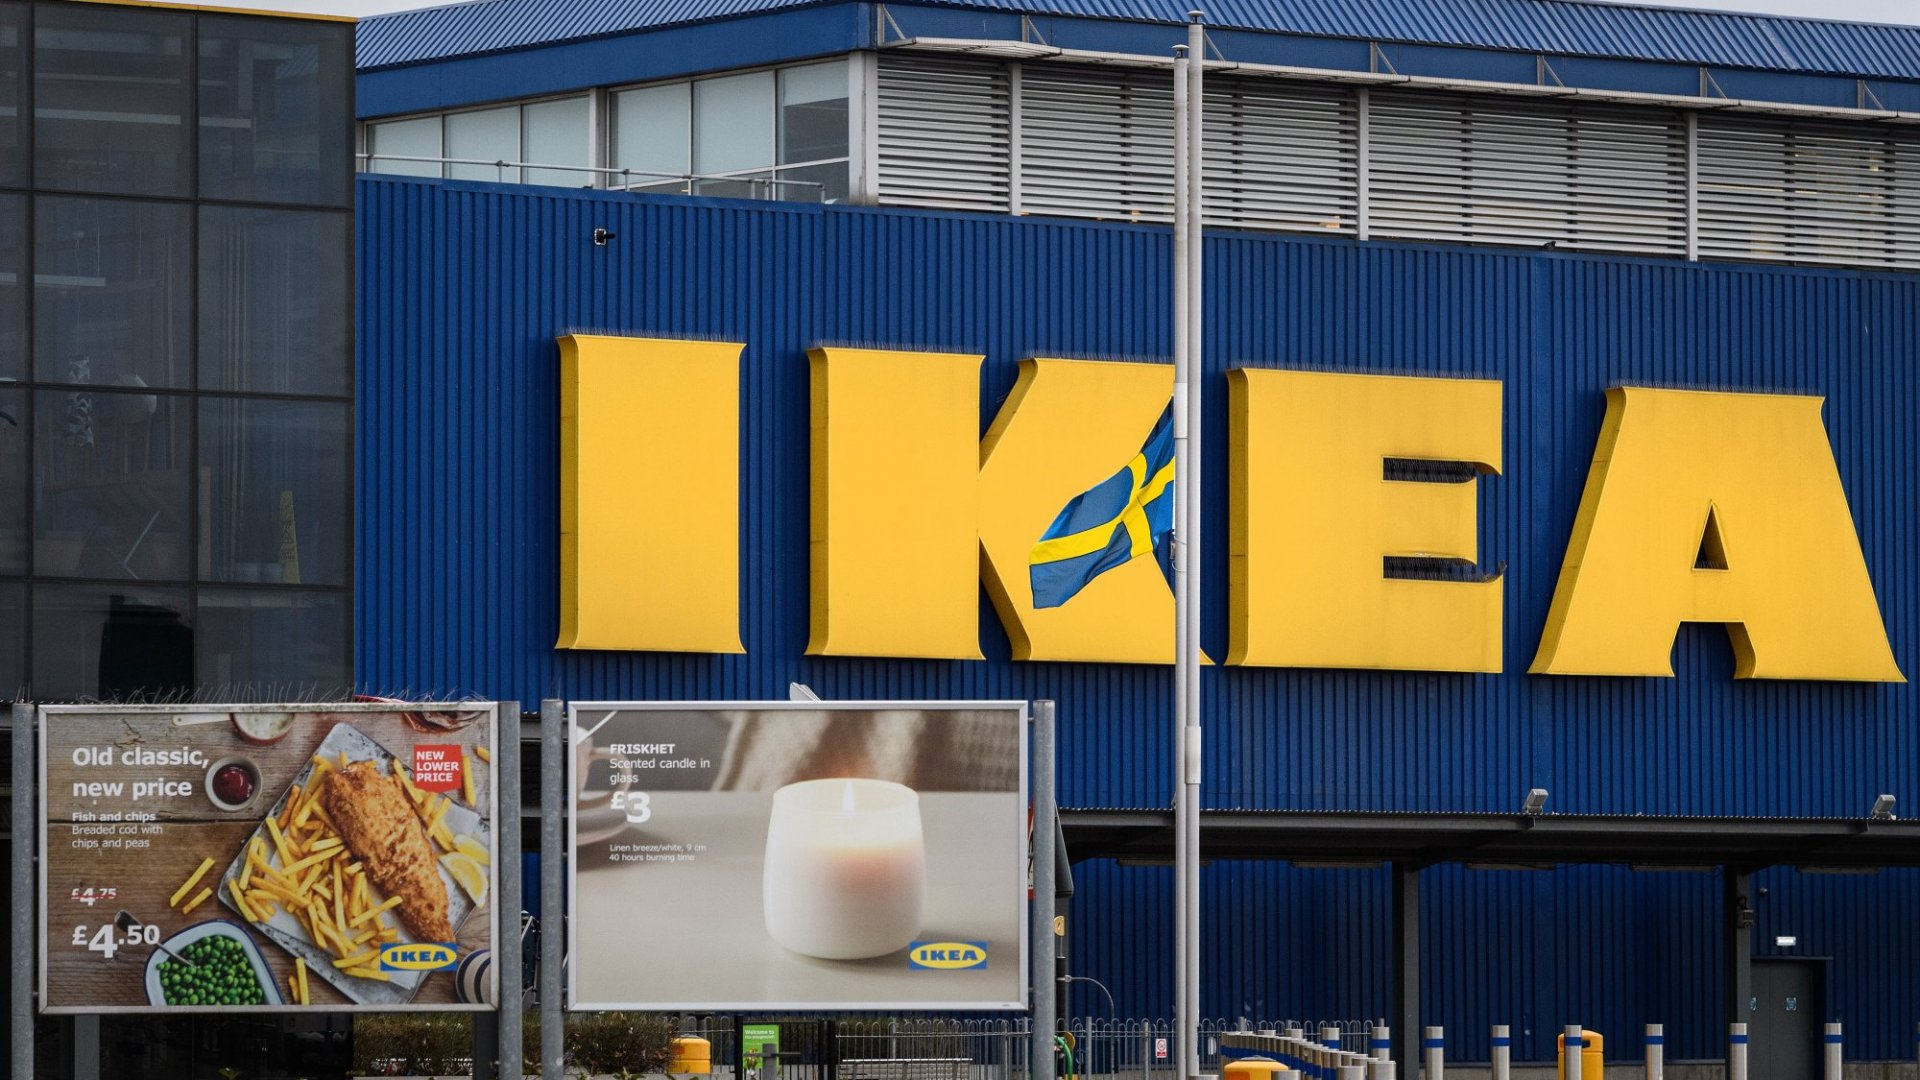 Ikea Refused to Sell Its New Rugs to Anyone Whose Brain Waves Didn't Pass Their Test